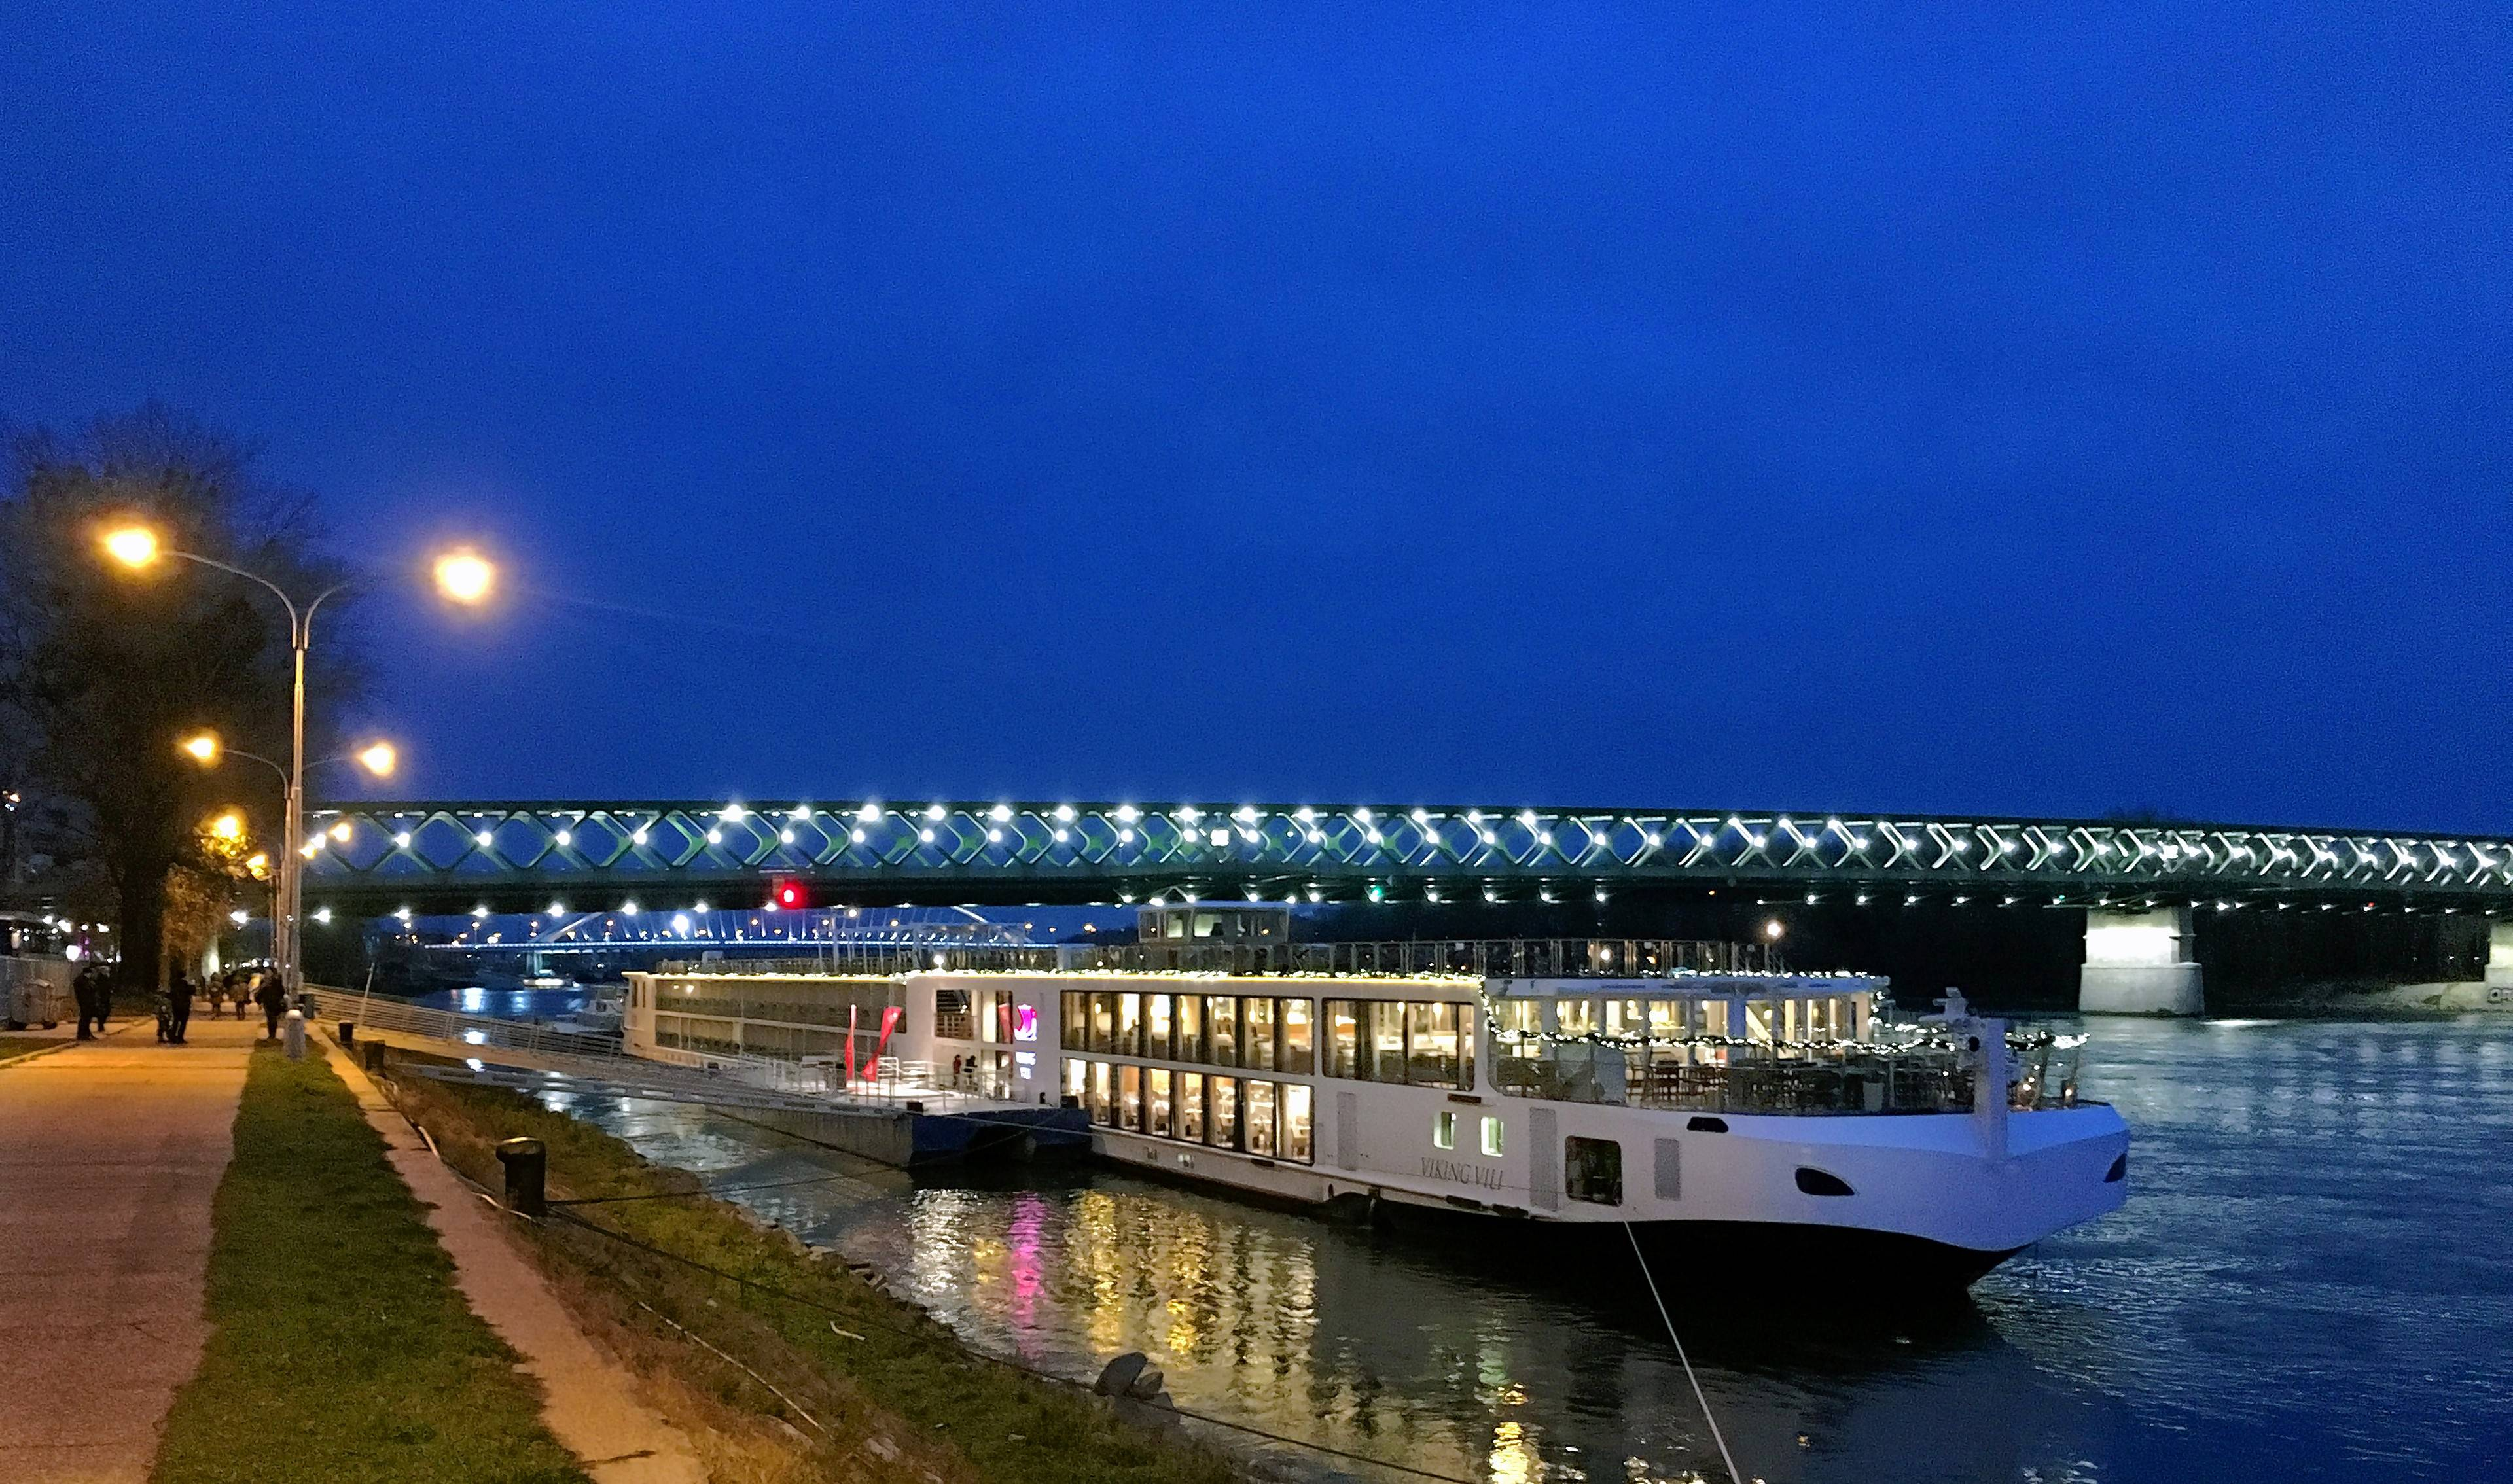 The Vili, one of Viking River Cruises ships, awaits shoppers returning from the Christmas market in Bratislava.